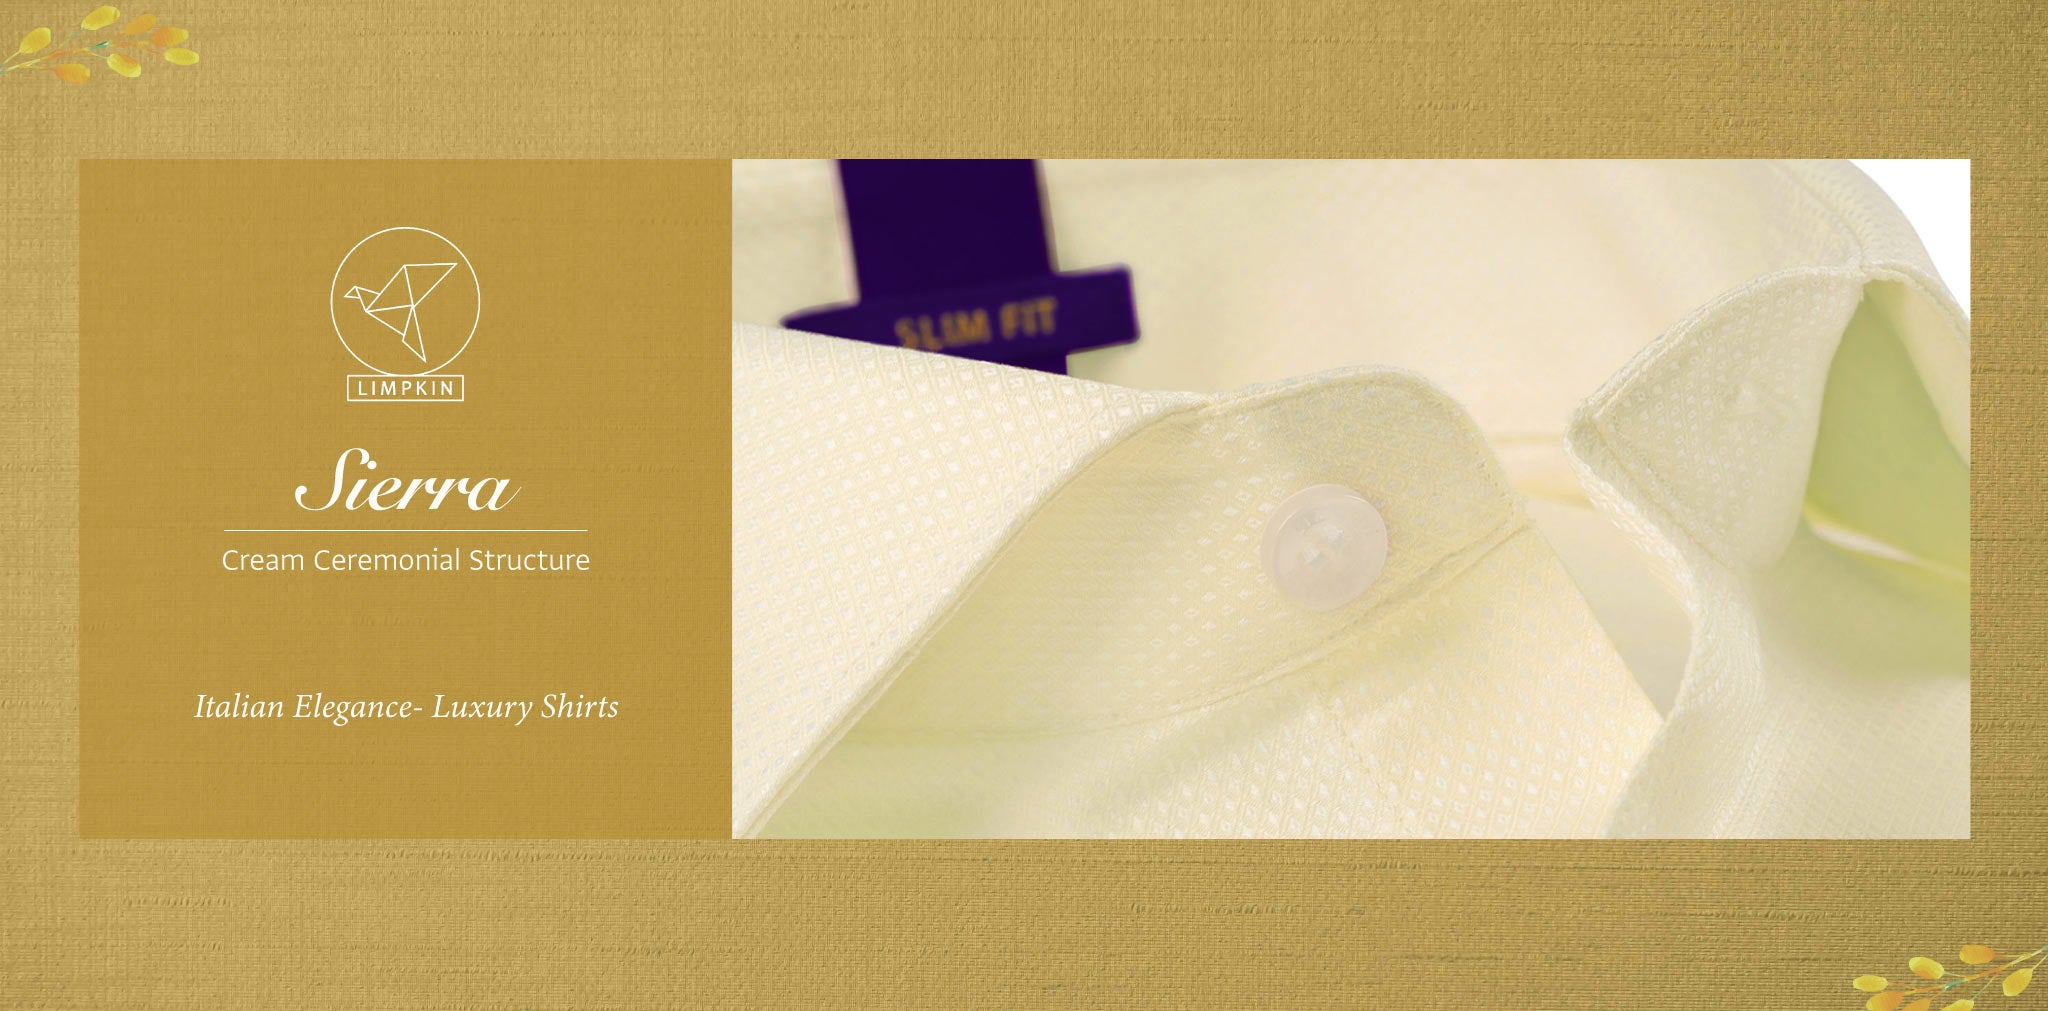 Sierra- Cream Ceremonial Structure- 2 Ply Pure Egyptian Giza Cotton- Delivery from 26th Sept - Banner